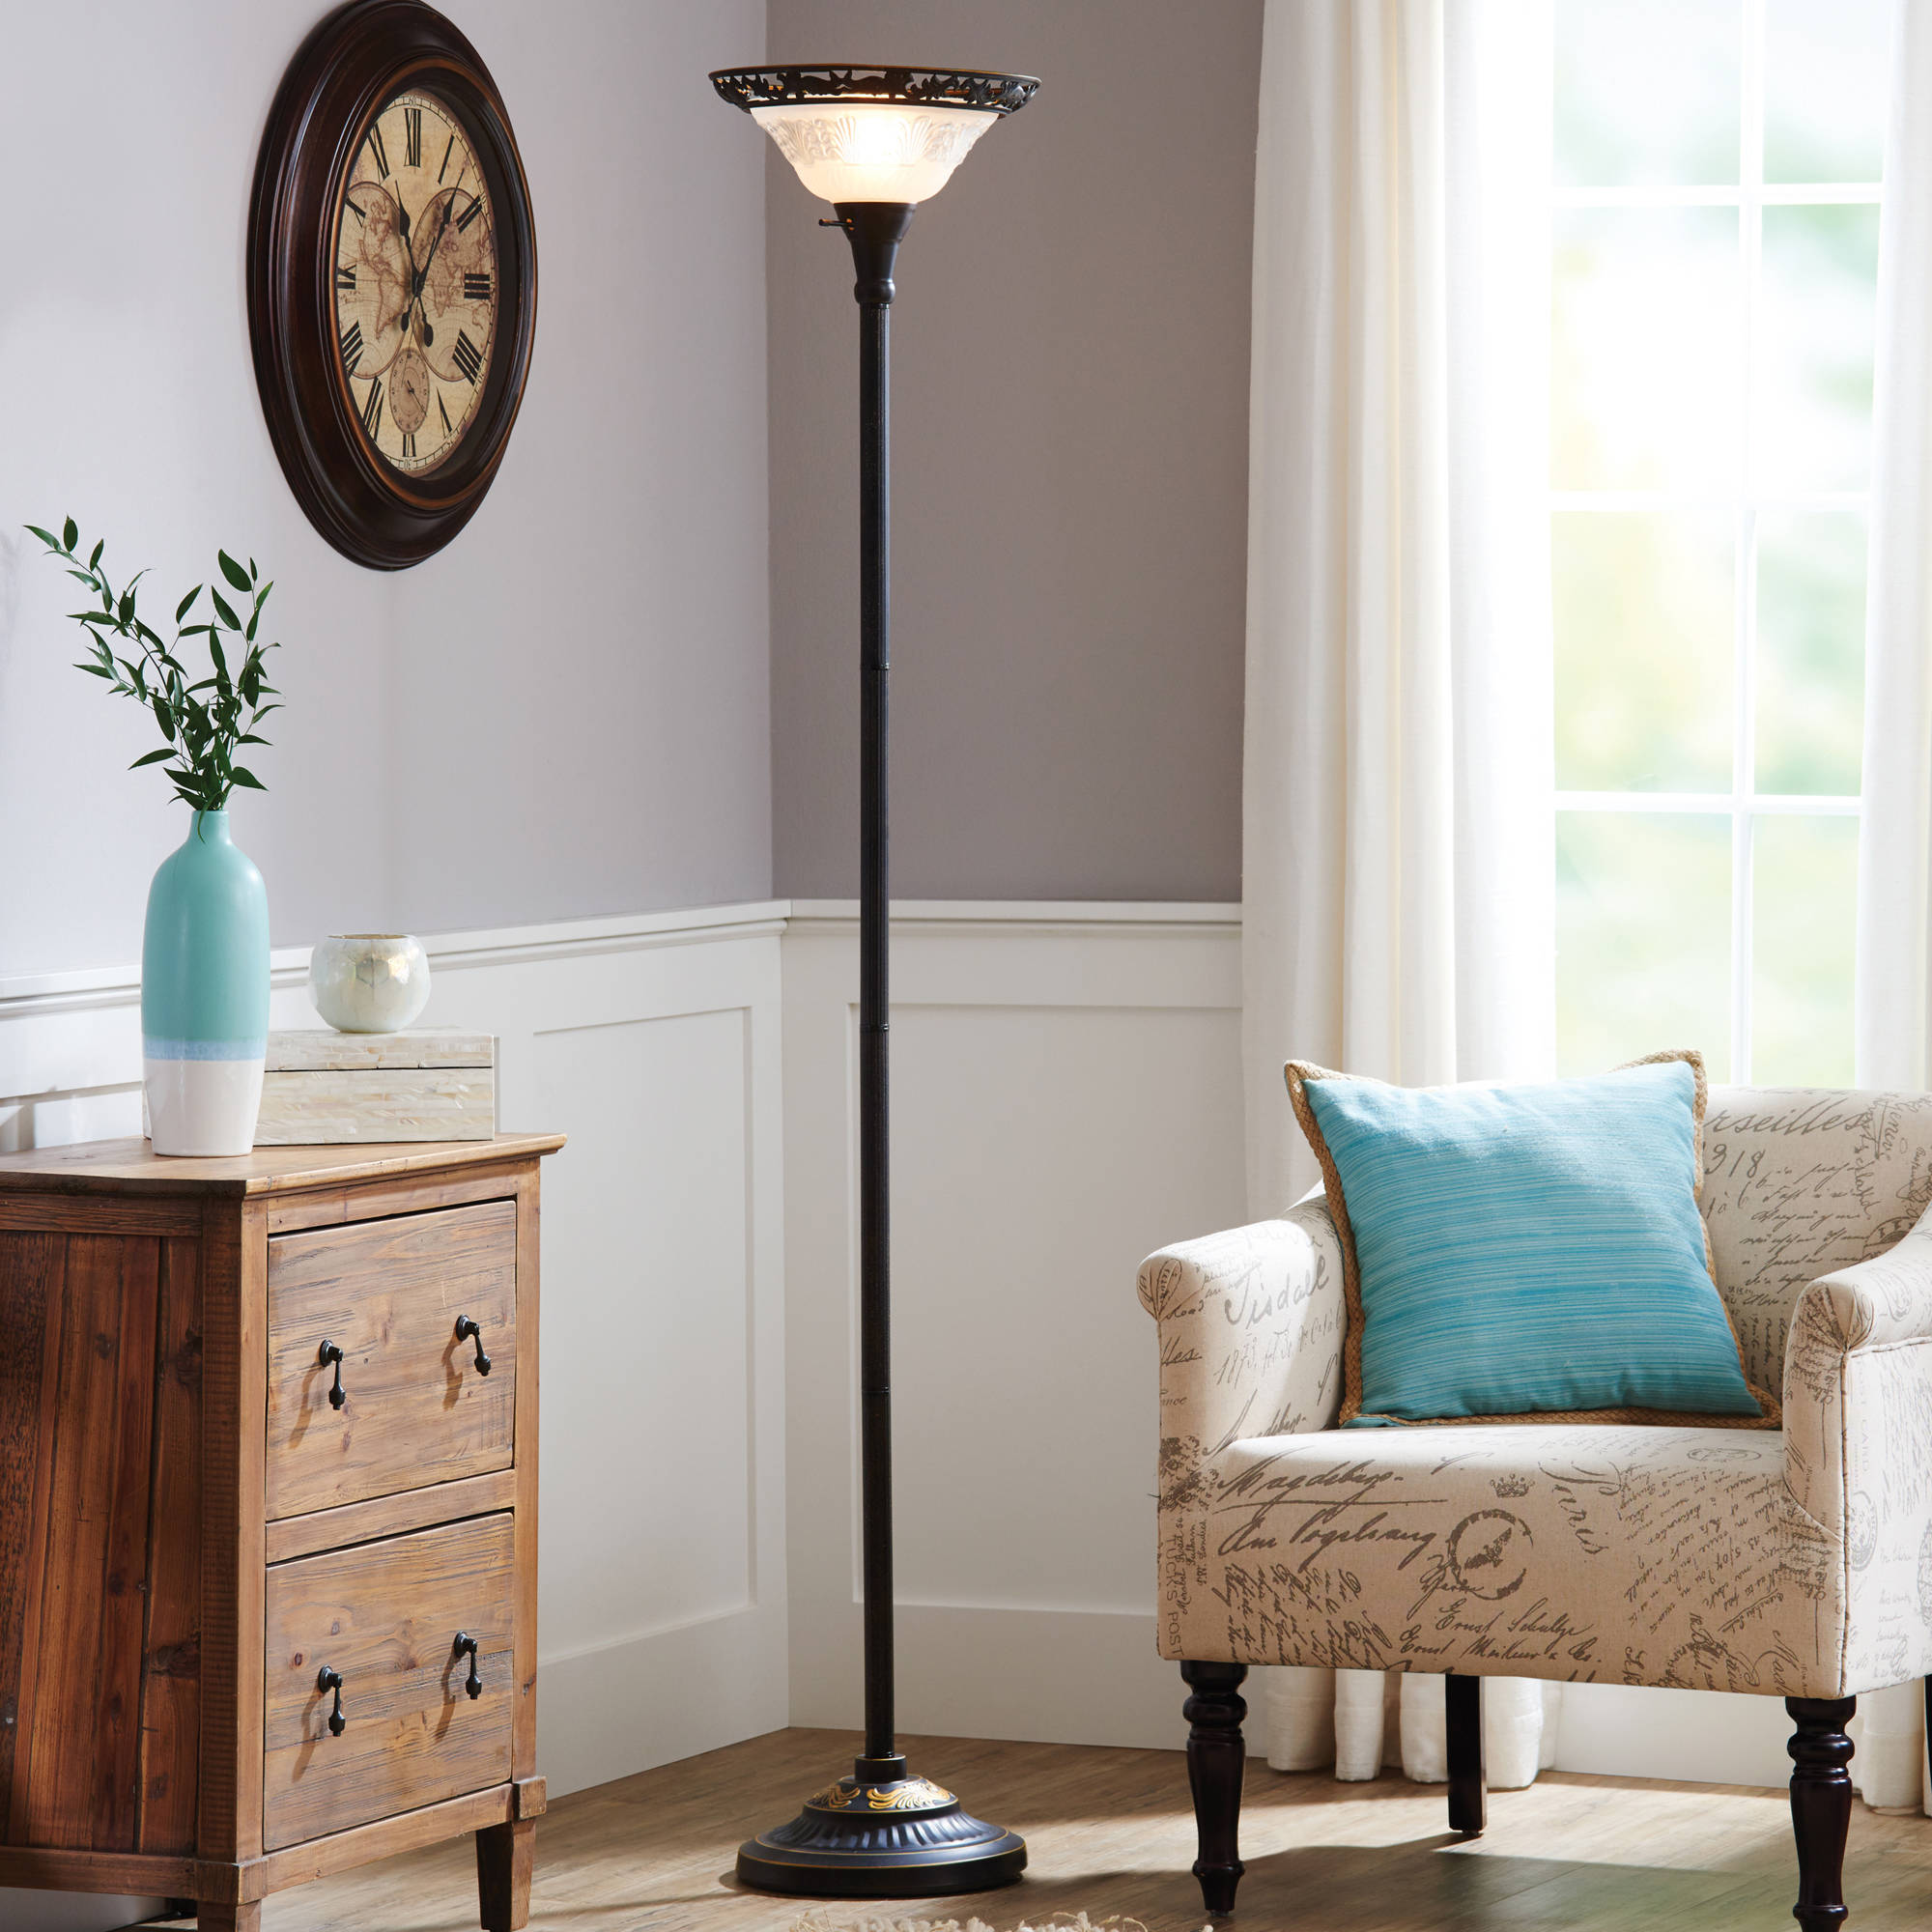 Floor Lamps Living Room. Better Homes  Gardens 70 Victorian Floor Lamp with Etched Glass Shade Walmart com